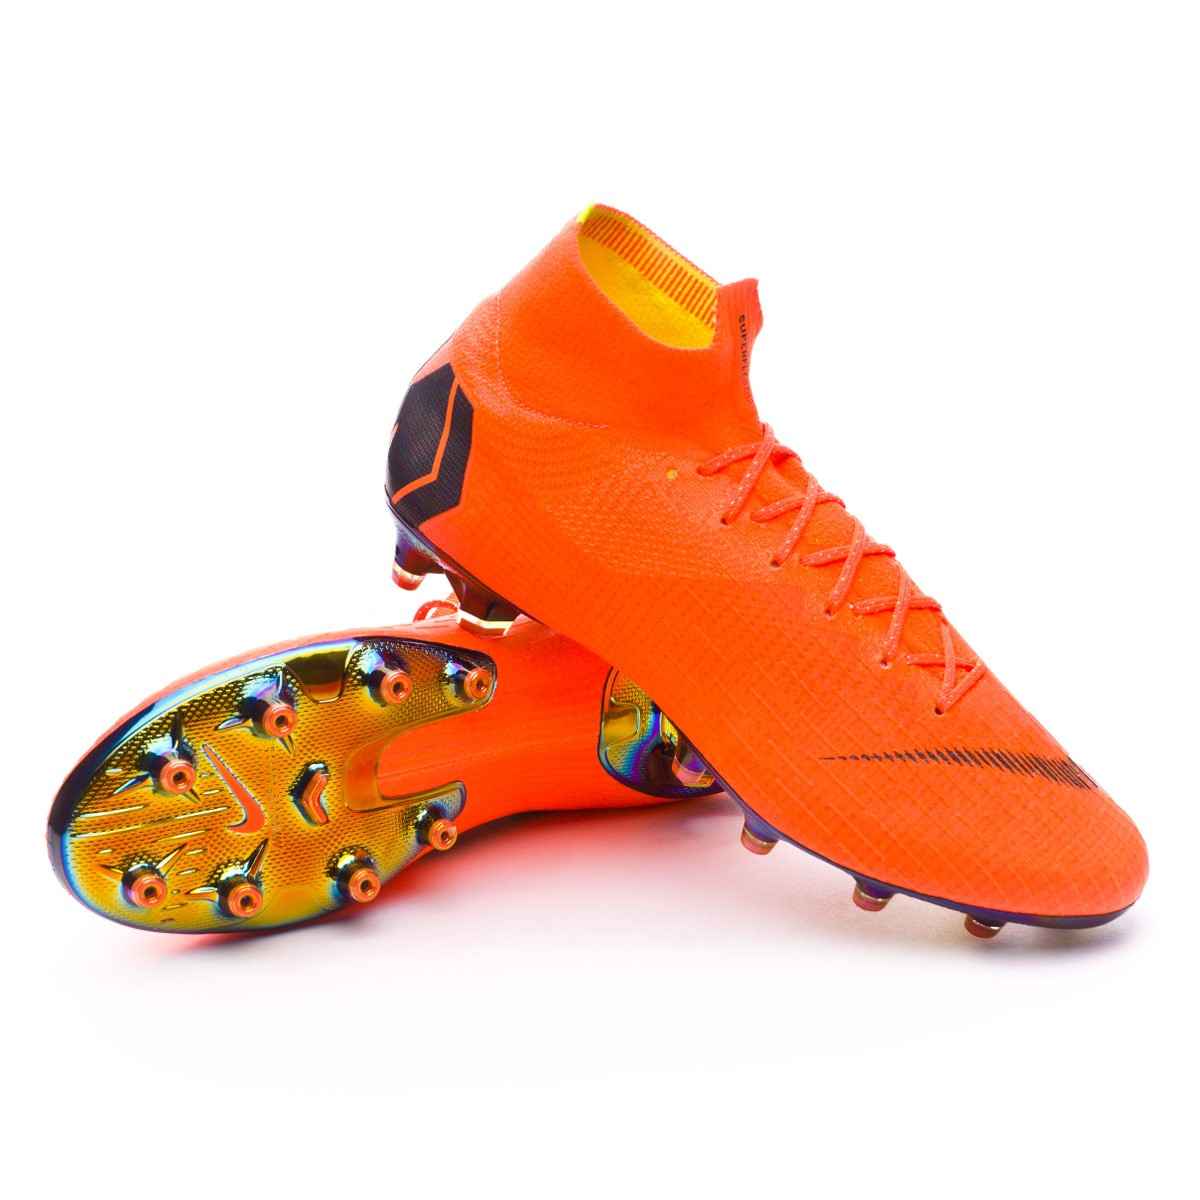 80f836b36fb Football Boots Nike Mercurial Superfly VI Elite AG-Pro Total orange ...